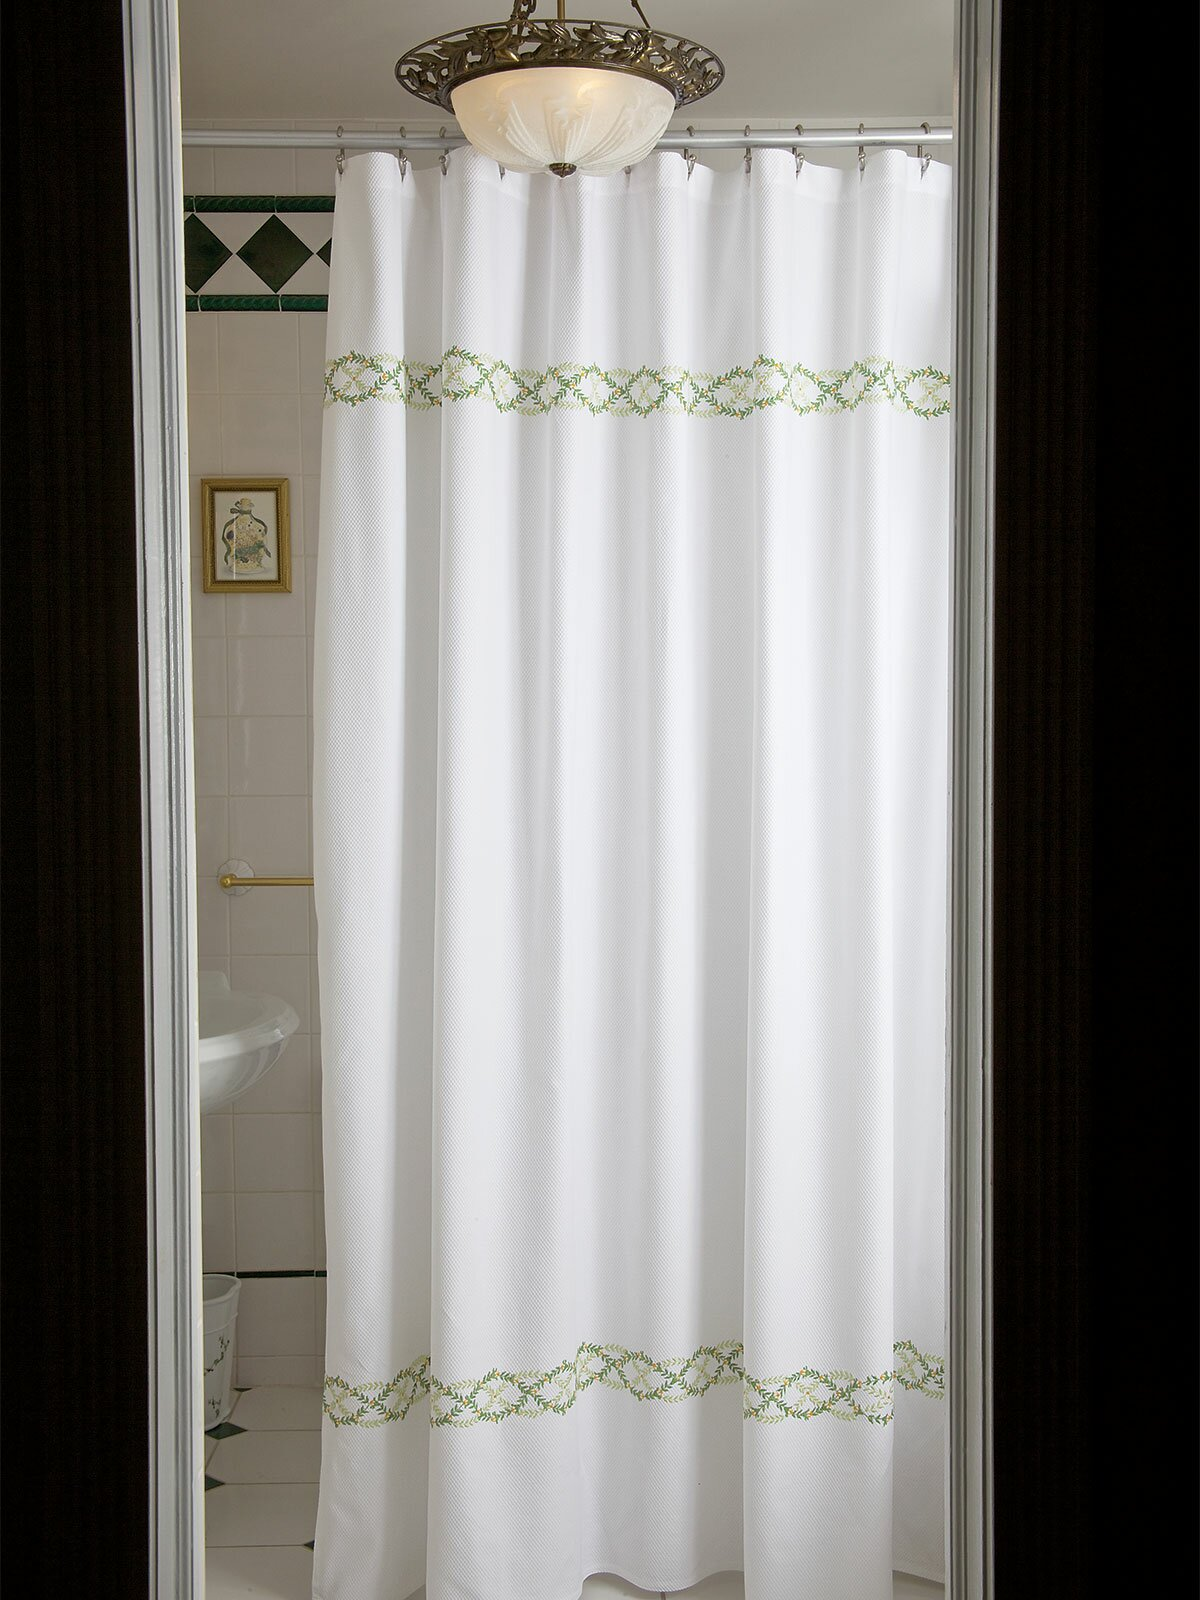 arm uncategorized curtain pics at sxs rod stunning hardware styles unique ideas restoration u swing curtains trends and of